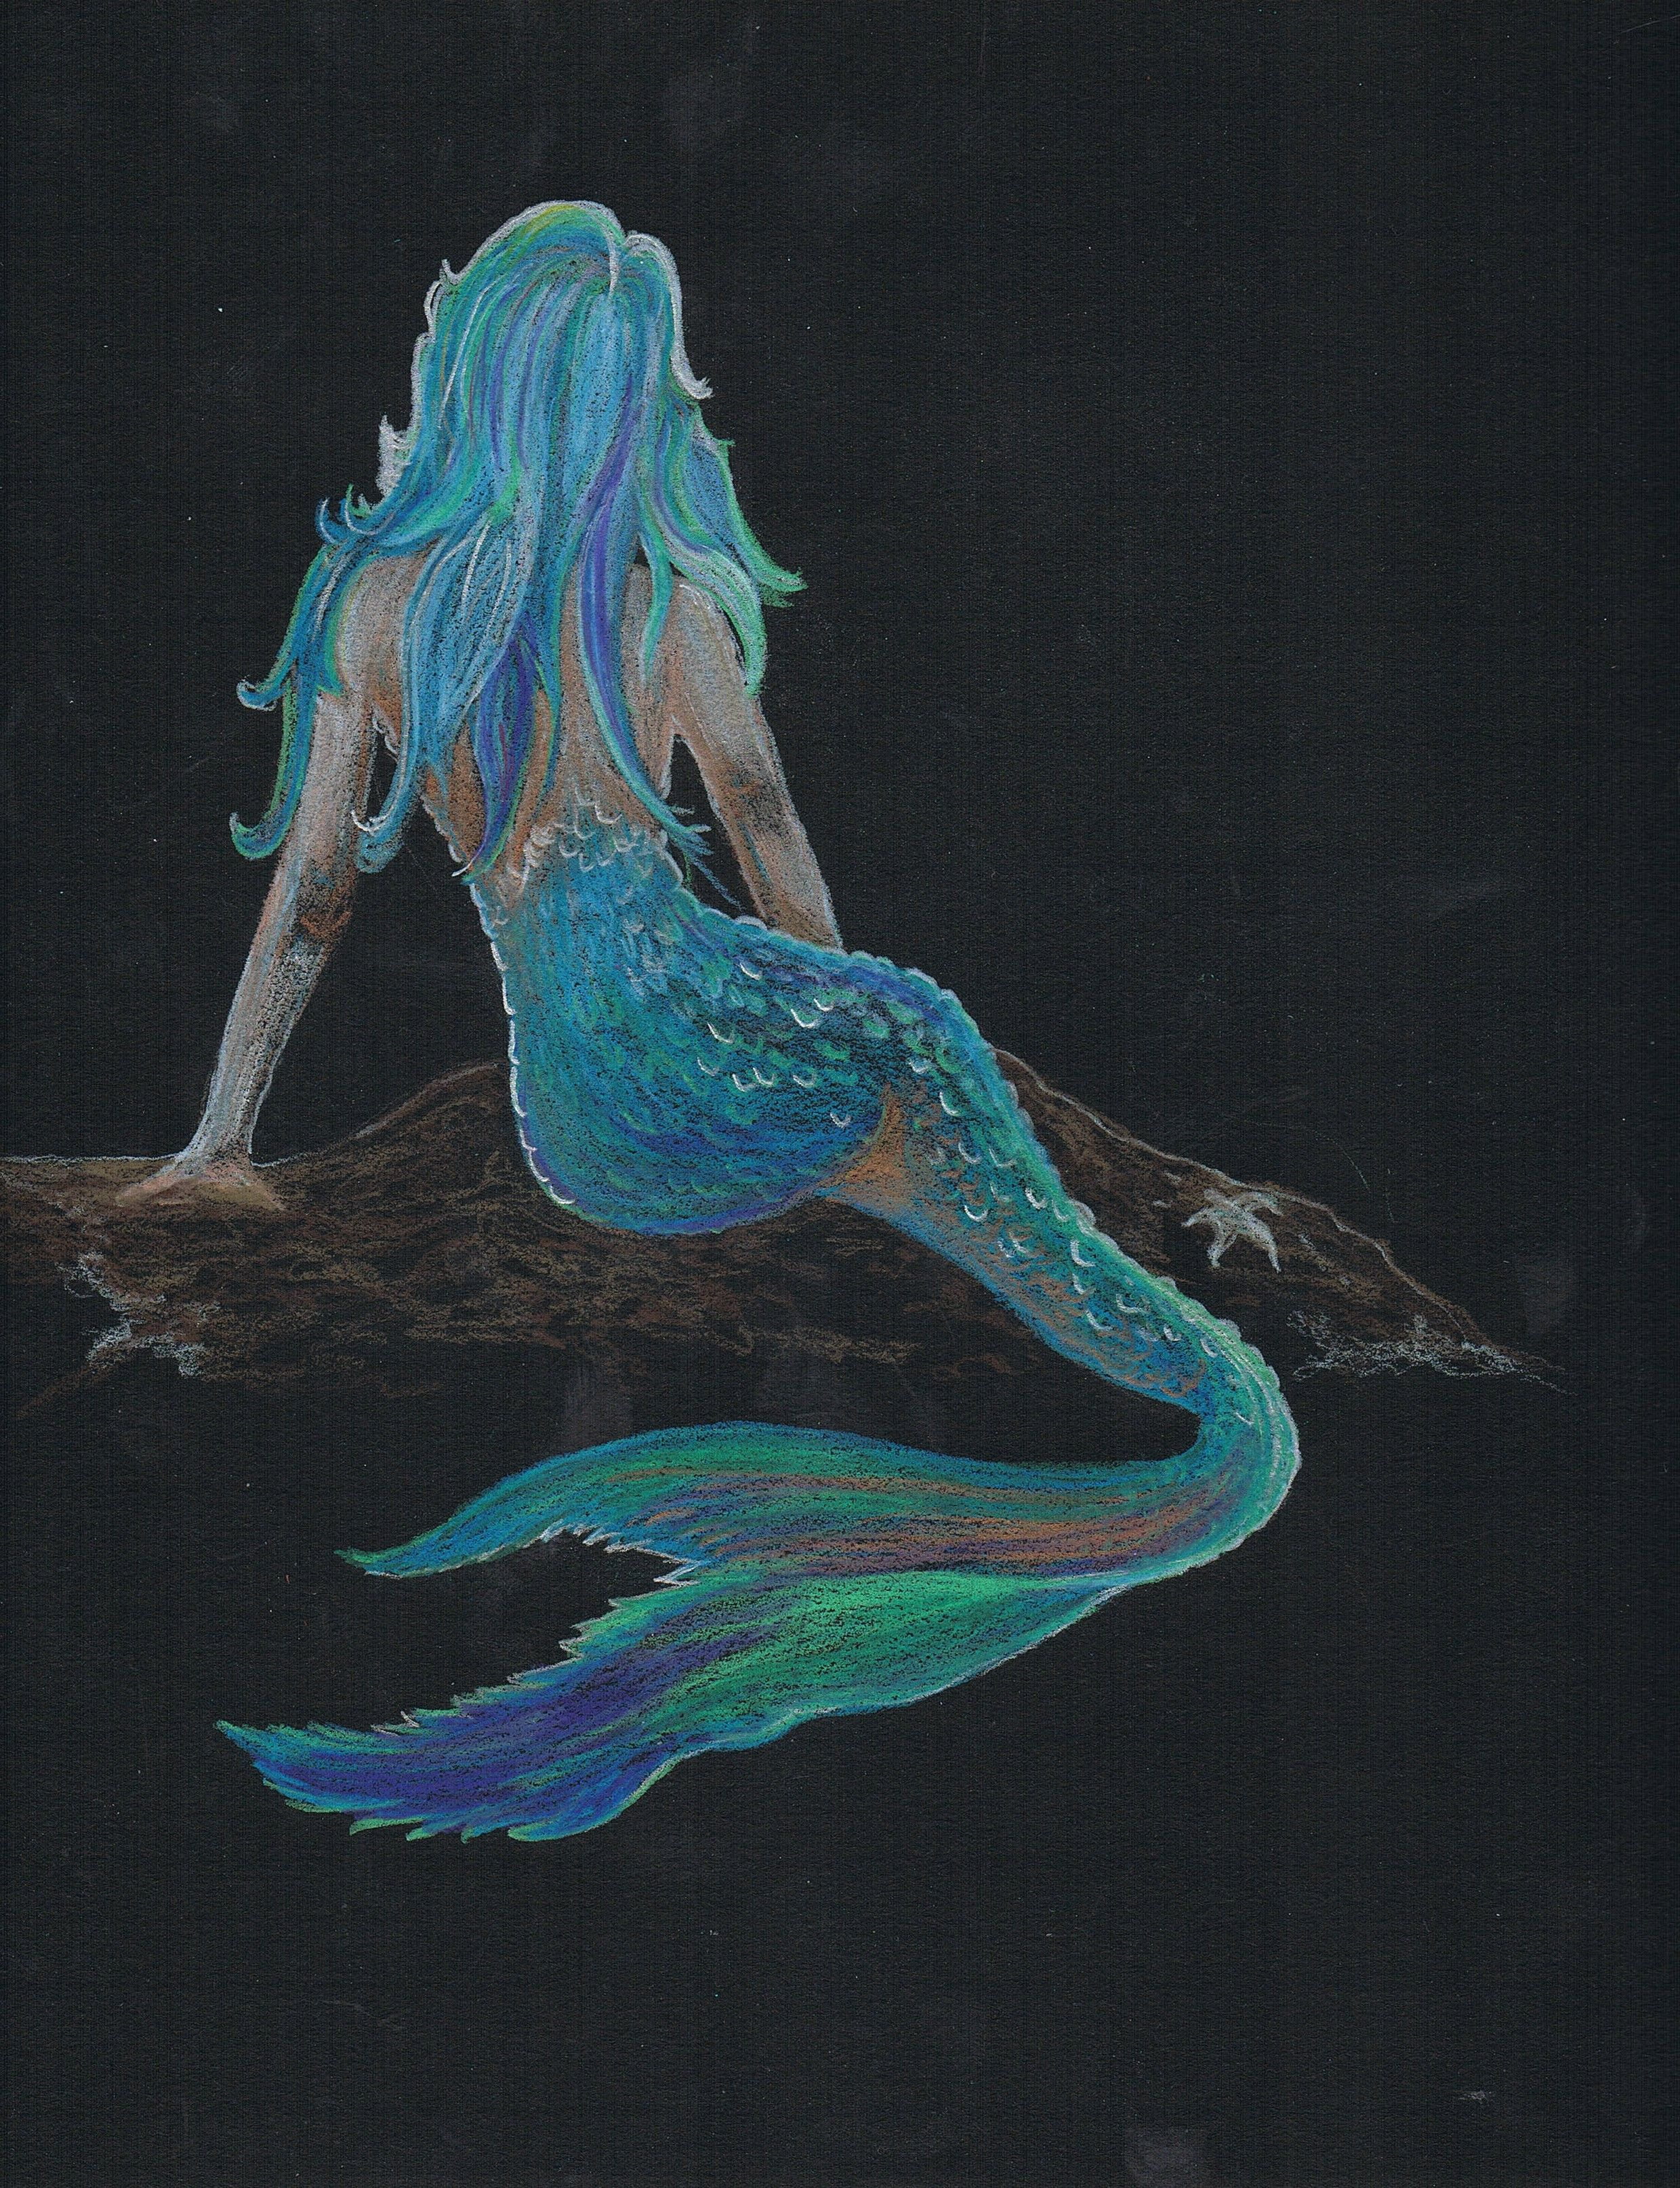 New drawing for etsy shop mermaid prismacolor pencil for Art sites like etsy